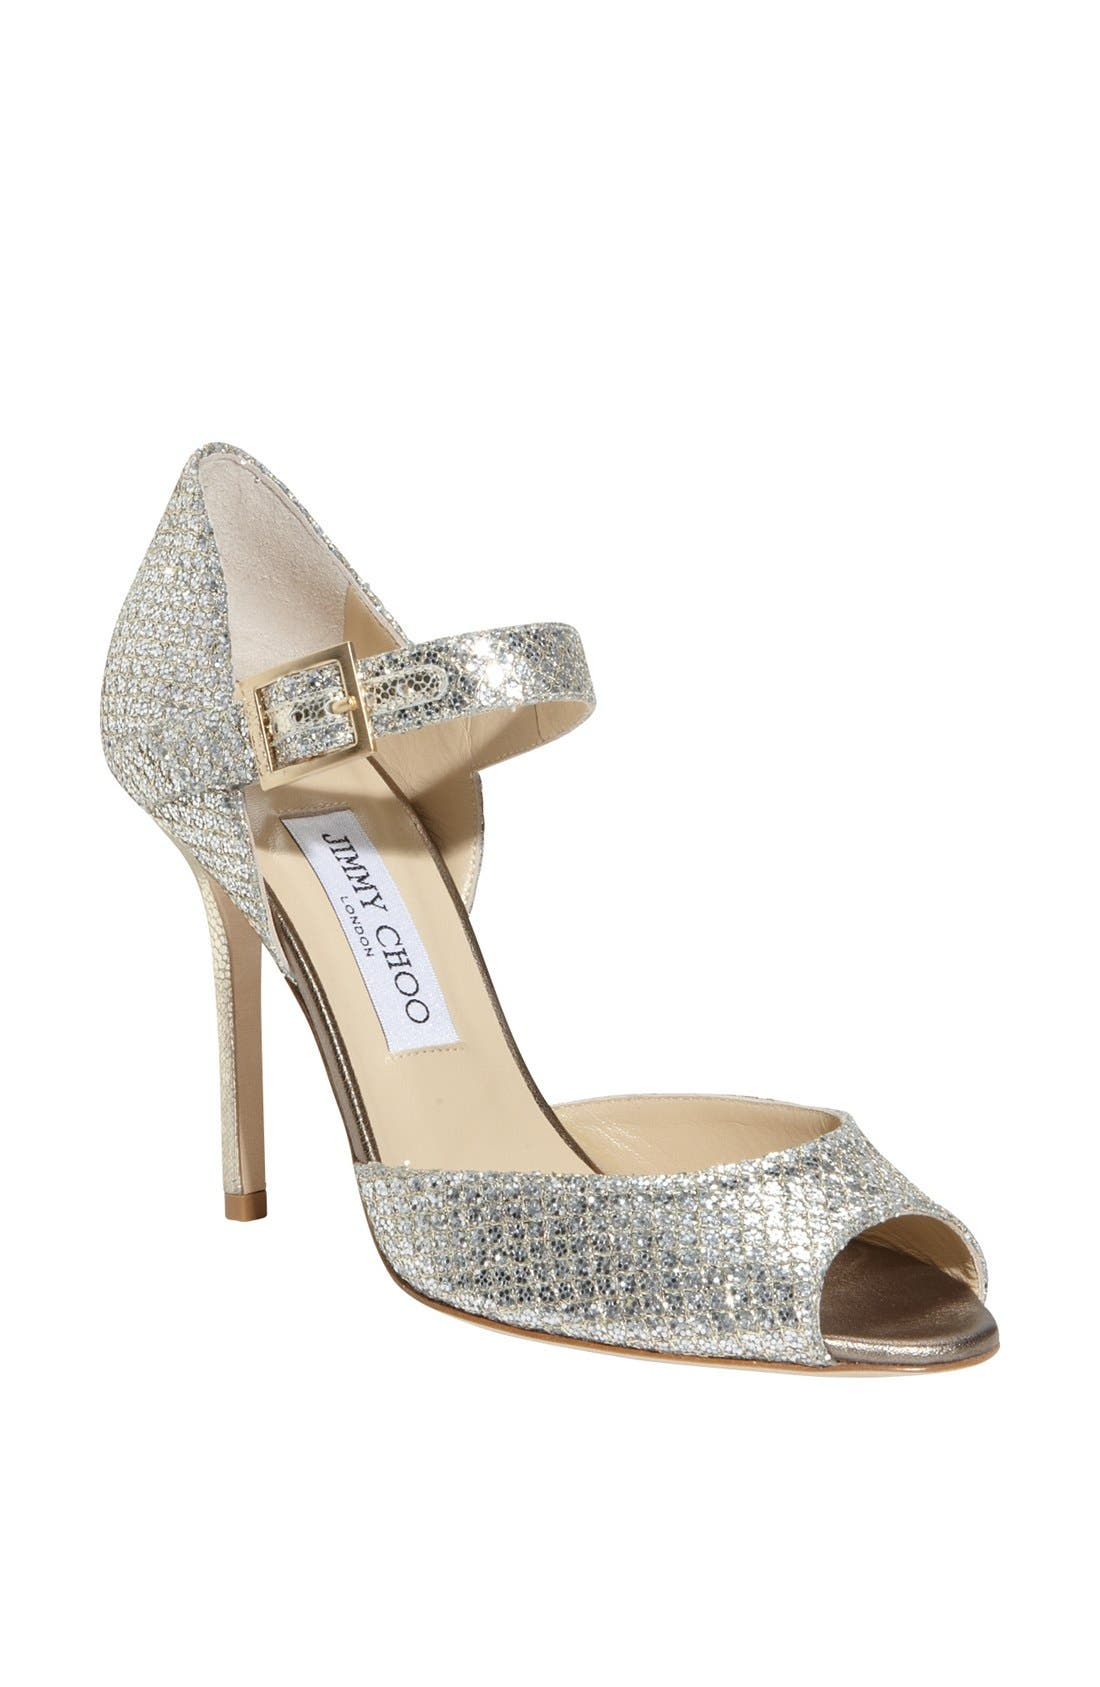 Alternate Image 1 Selected - Jimmy Choo 'Lace' Mary Jane Pump